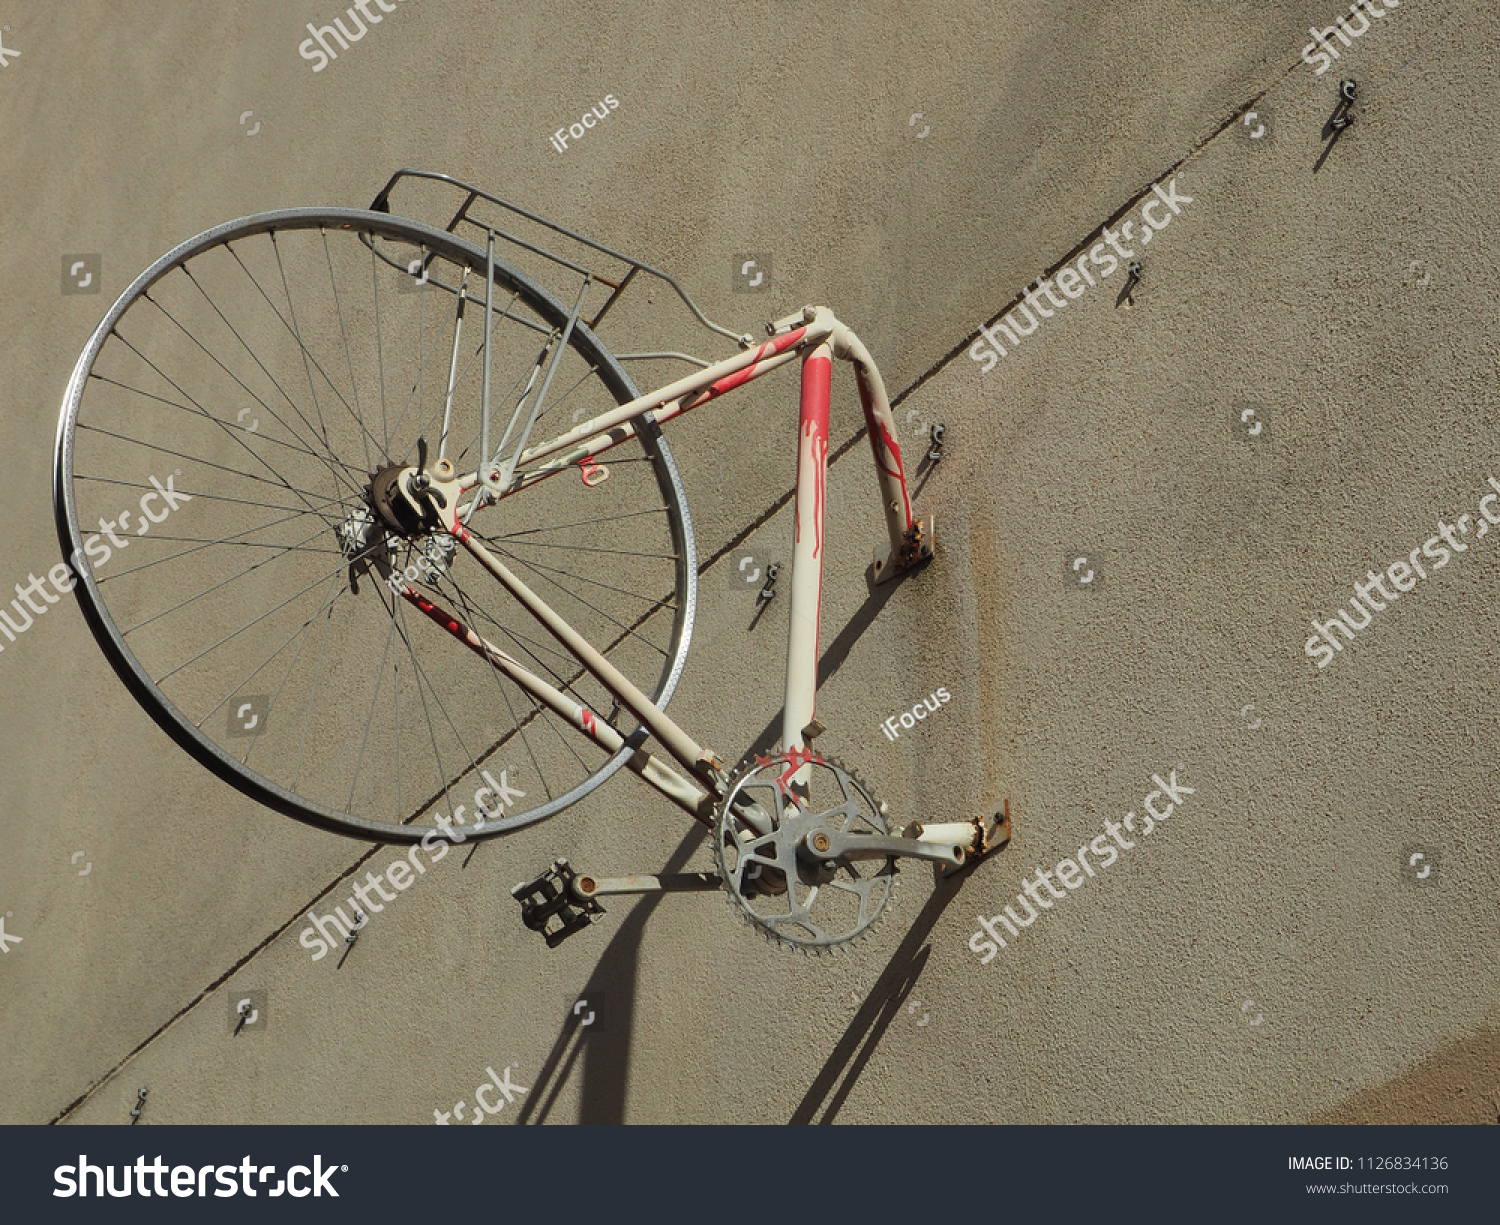 PARIS, FRANCE - JULY 3, 2018: Street art bike on a wall in the 11th district -arrondissement- of French capital, on July 3, 2018 in Paris, France.